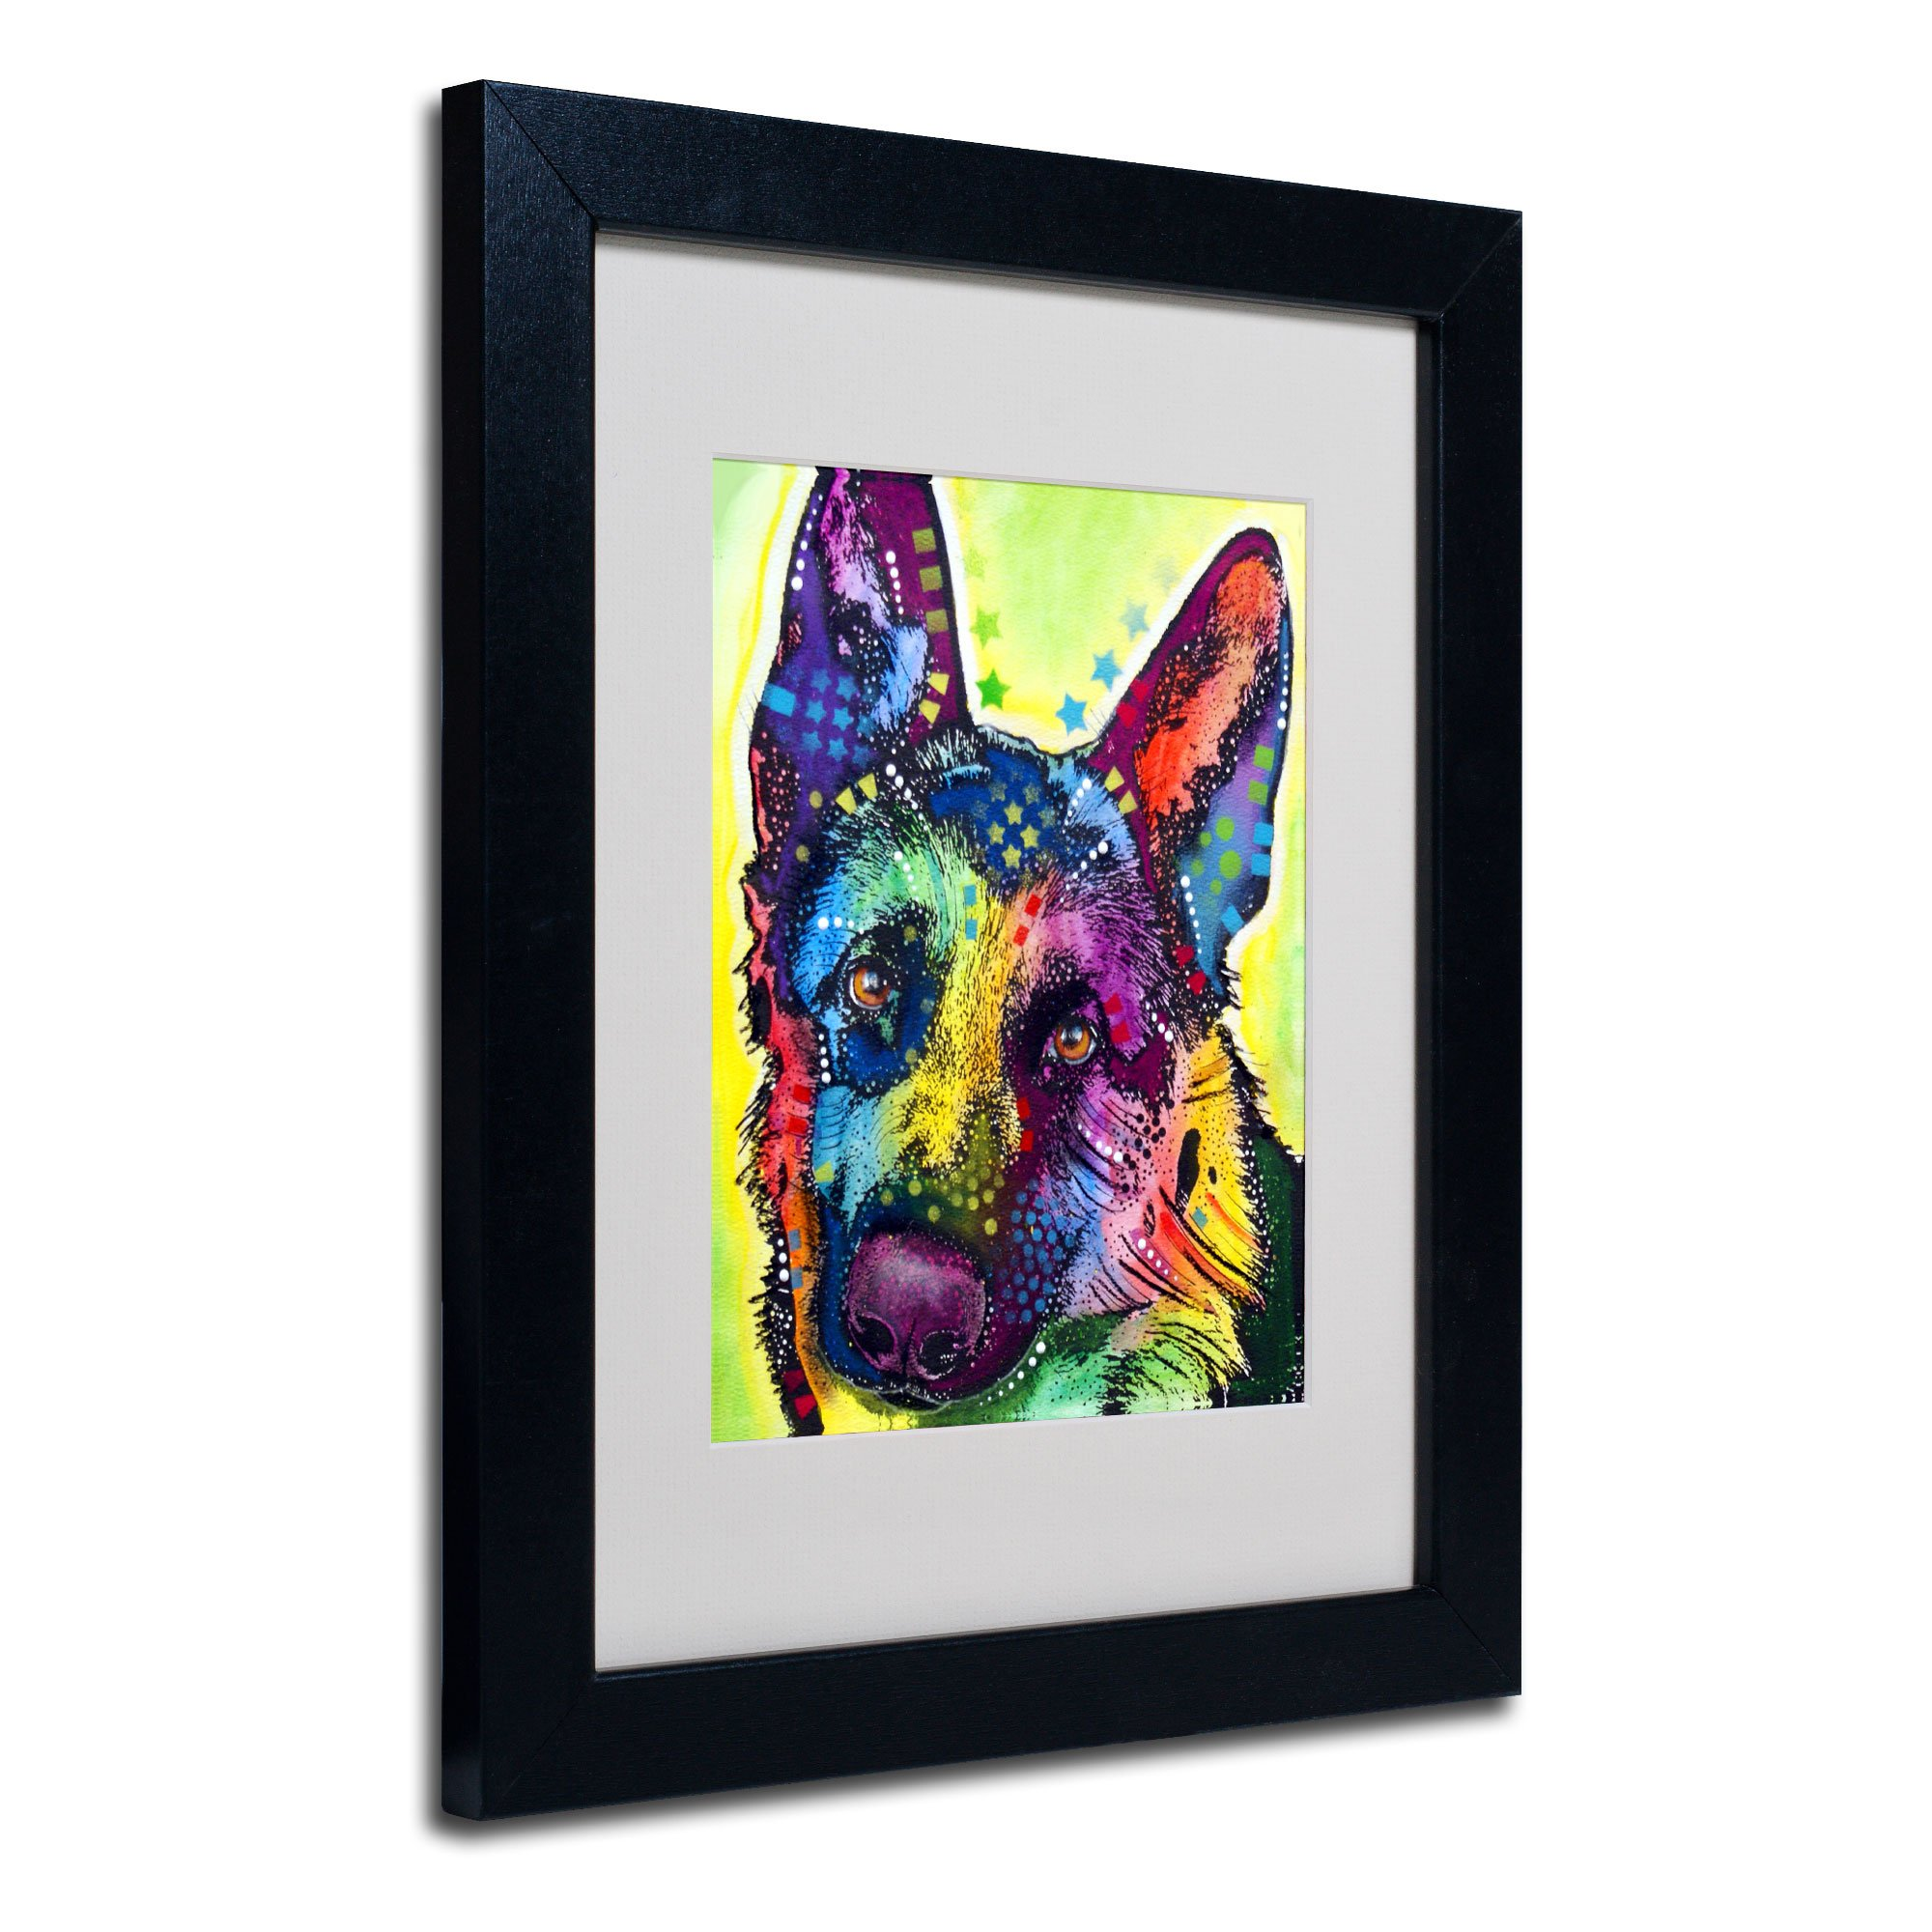 German Shepherd Matted Artwork by Dean Russo with Black Frame, 11 by 14-Inch